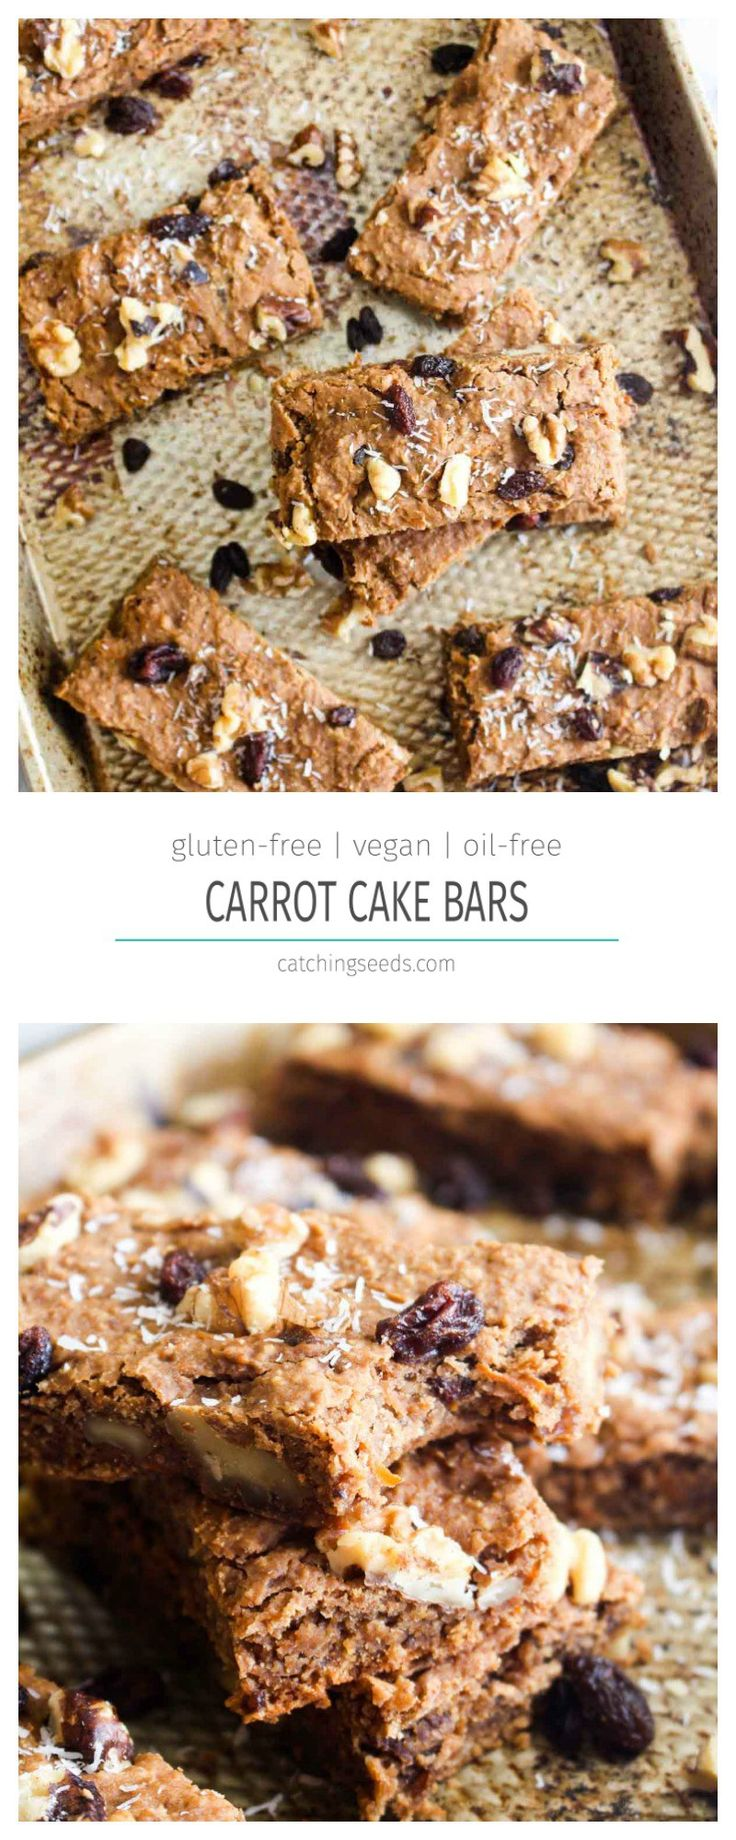 These Healthy Carrot Cake Bars are a secretly healthy treat recipe! Full of carrot cake flavors, but made without refined sugar, flour, or oil! | CatchingSeeds.com